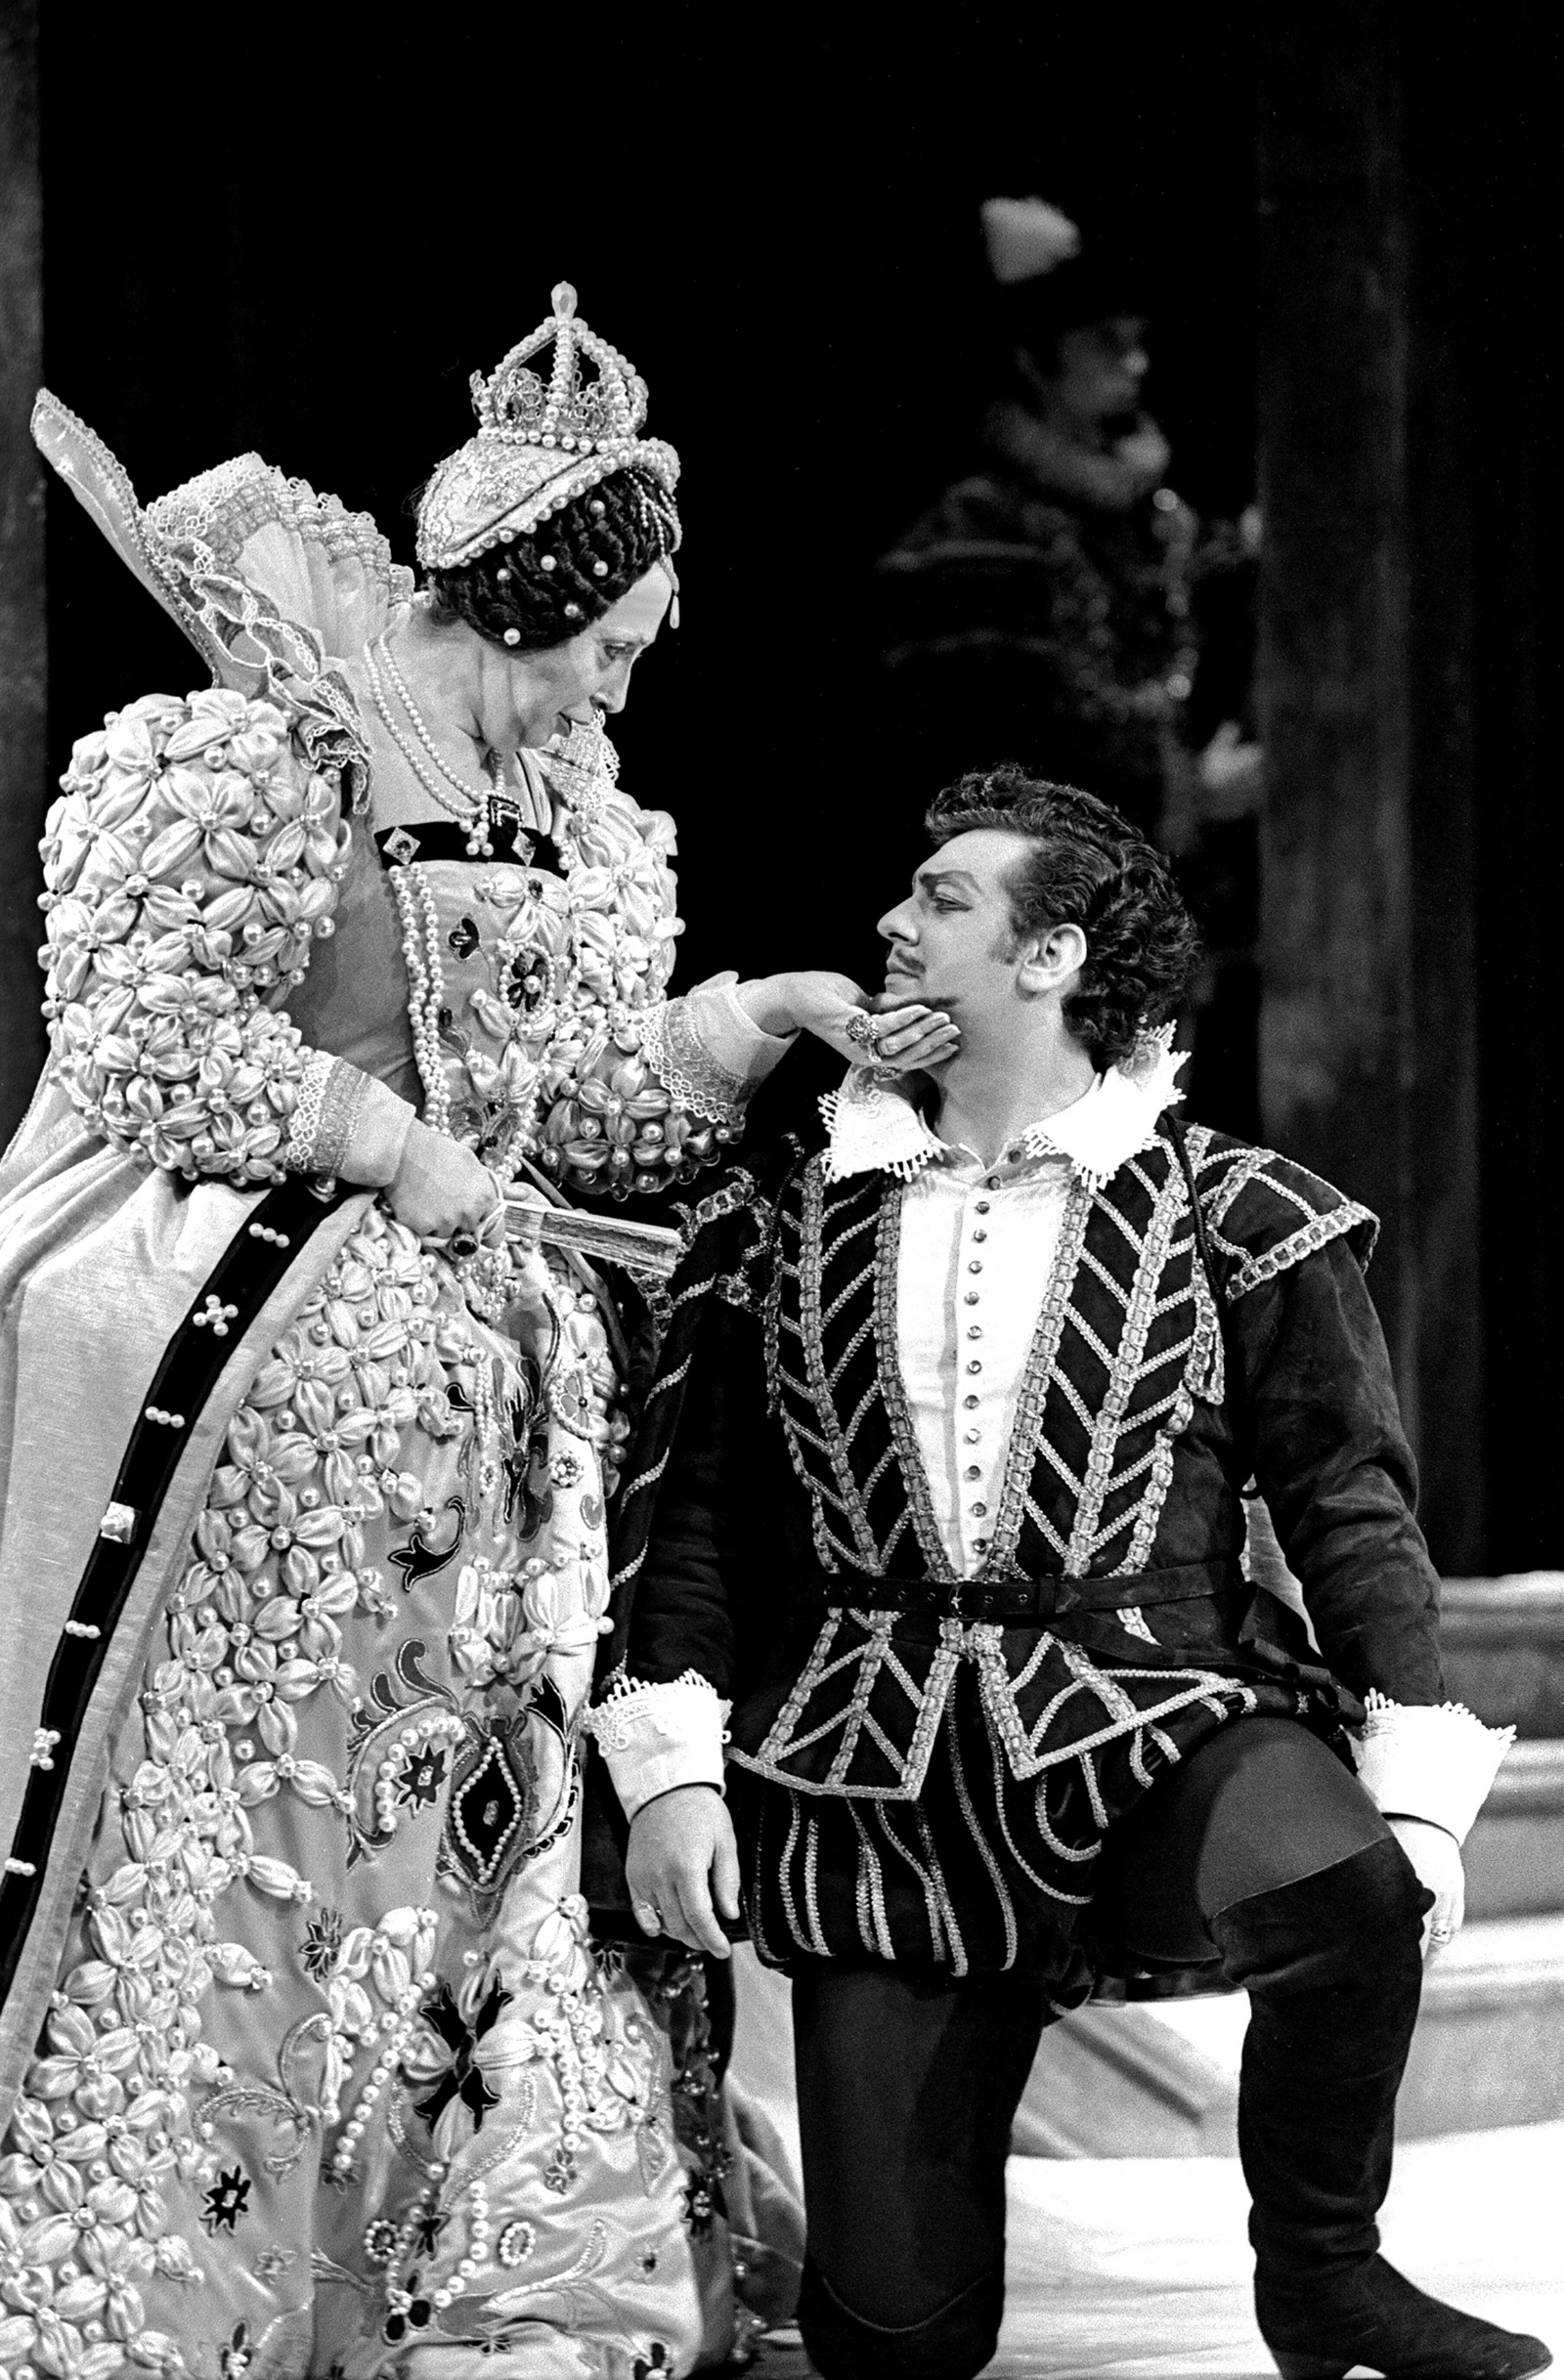 Beverly Sills and Plácido Domingo in a performance of Roberto Devereux at New York City Opera, 1970. Sills wrote in her autobiography that they played their characters 'much the same way Bette Davis and Errol Flynn portrayed them in Elizabeth and Essex.'